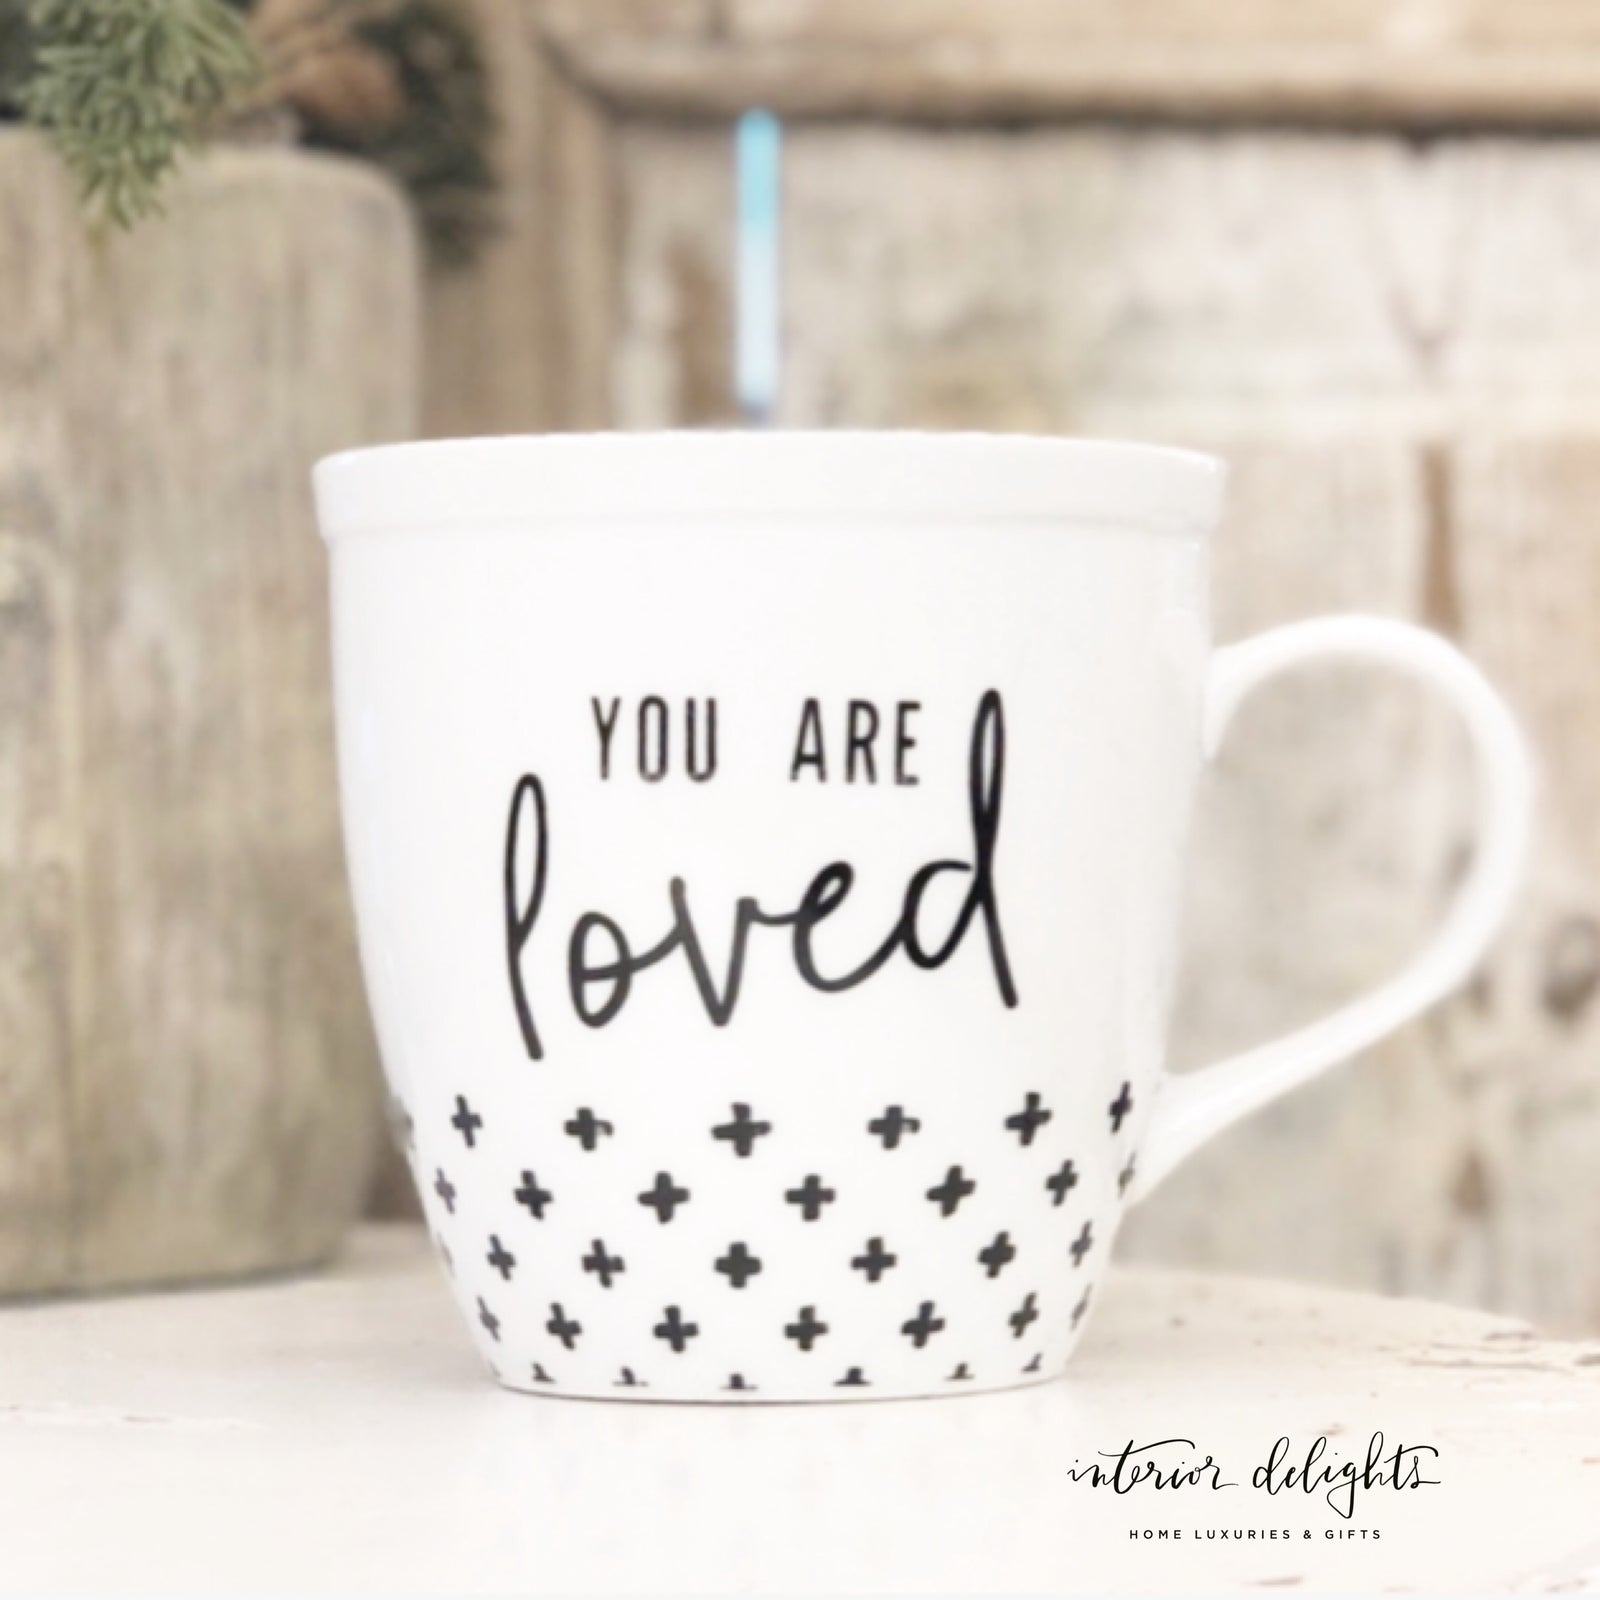 You are Loved Mug - Interior Delights Parker